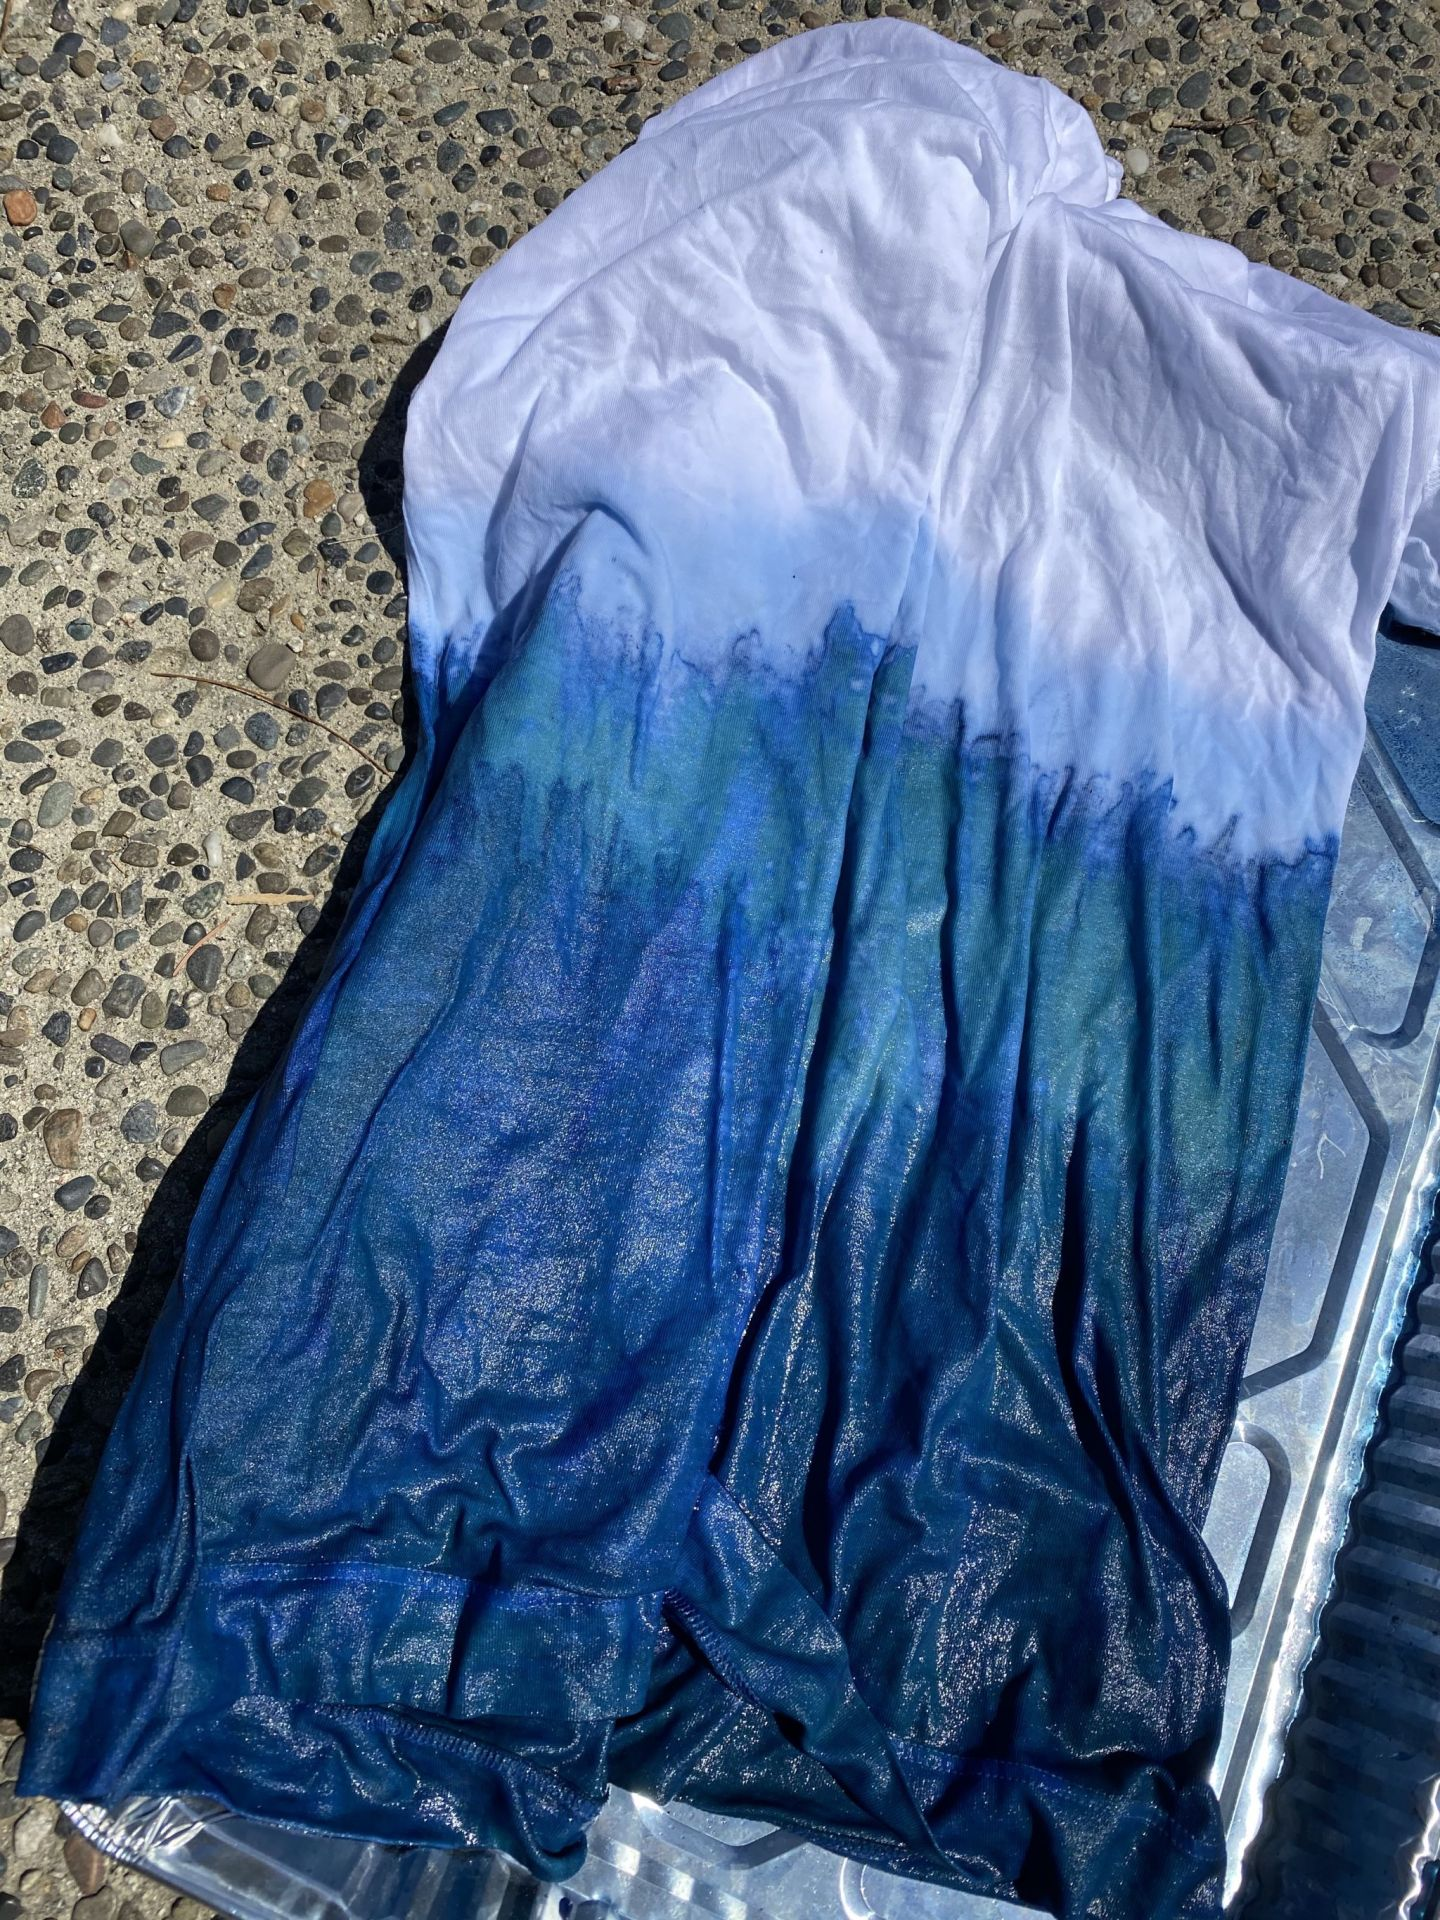 Fun With Natural Indigo Shibori Tie Dying During Shelter In Place